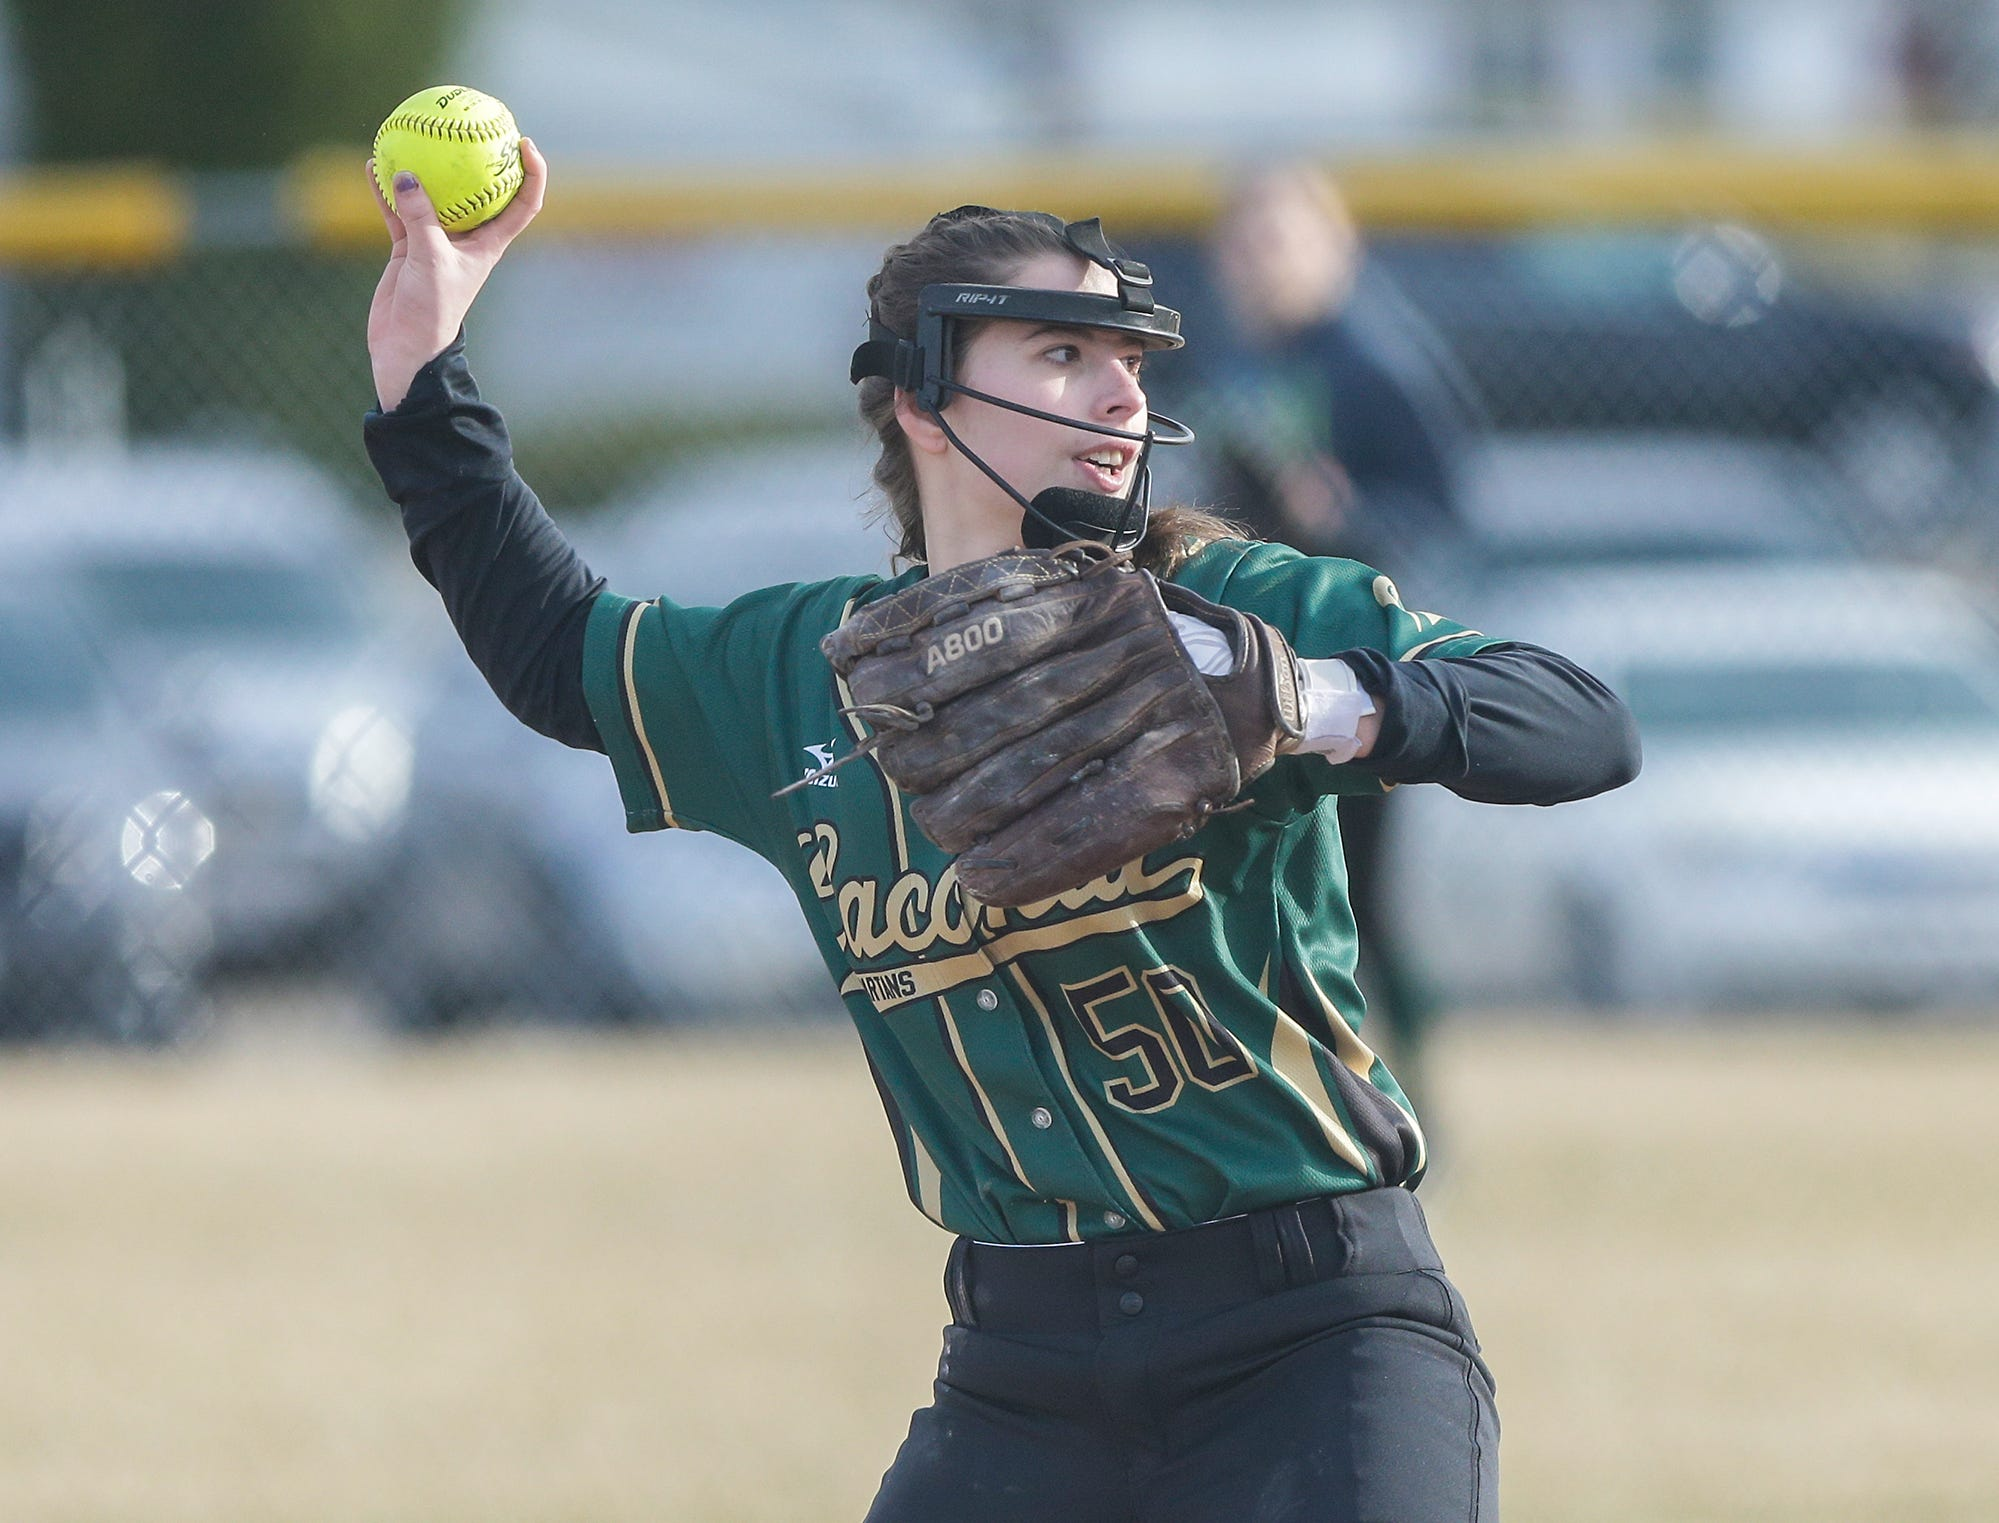 Laconia High School softball's Sam Hamburgur throws a ball to first against Winnebago Lutheran Academy April 9, 2019 during their game in Fond du Lac, Wis. Laconia won the game 25-9. Doug Raflik/USA TODAY NETWORK-Wisconsin